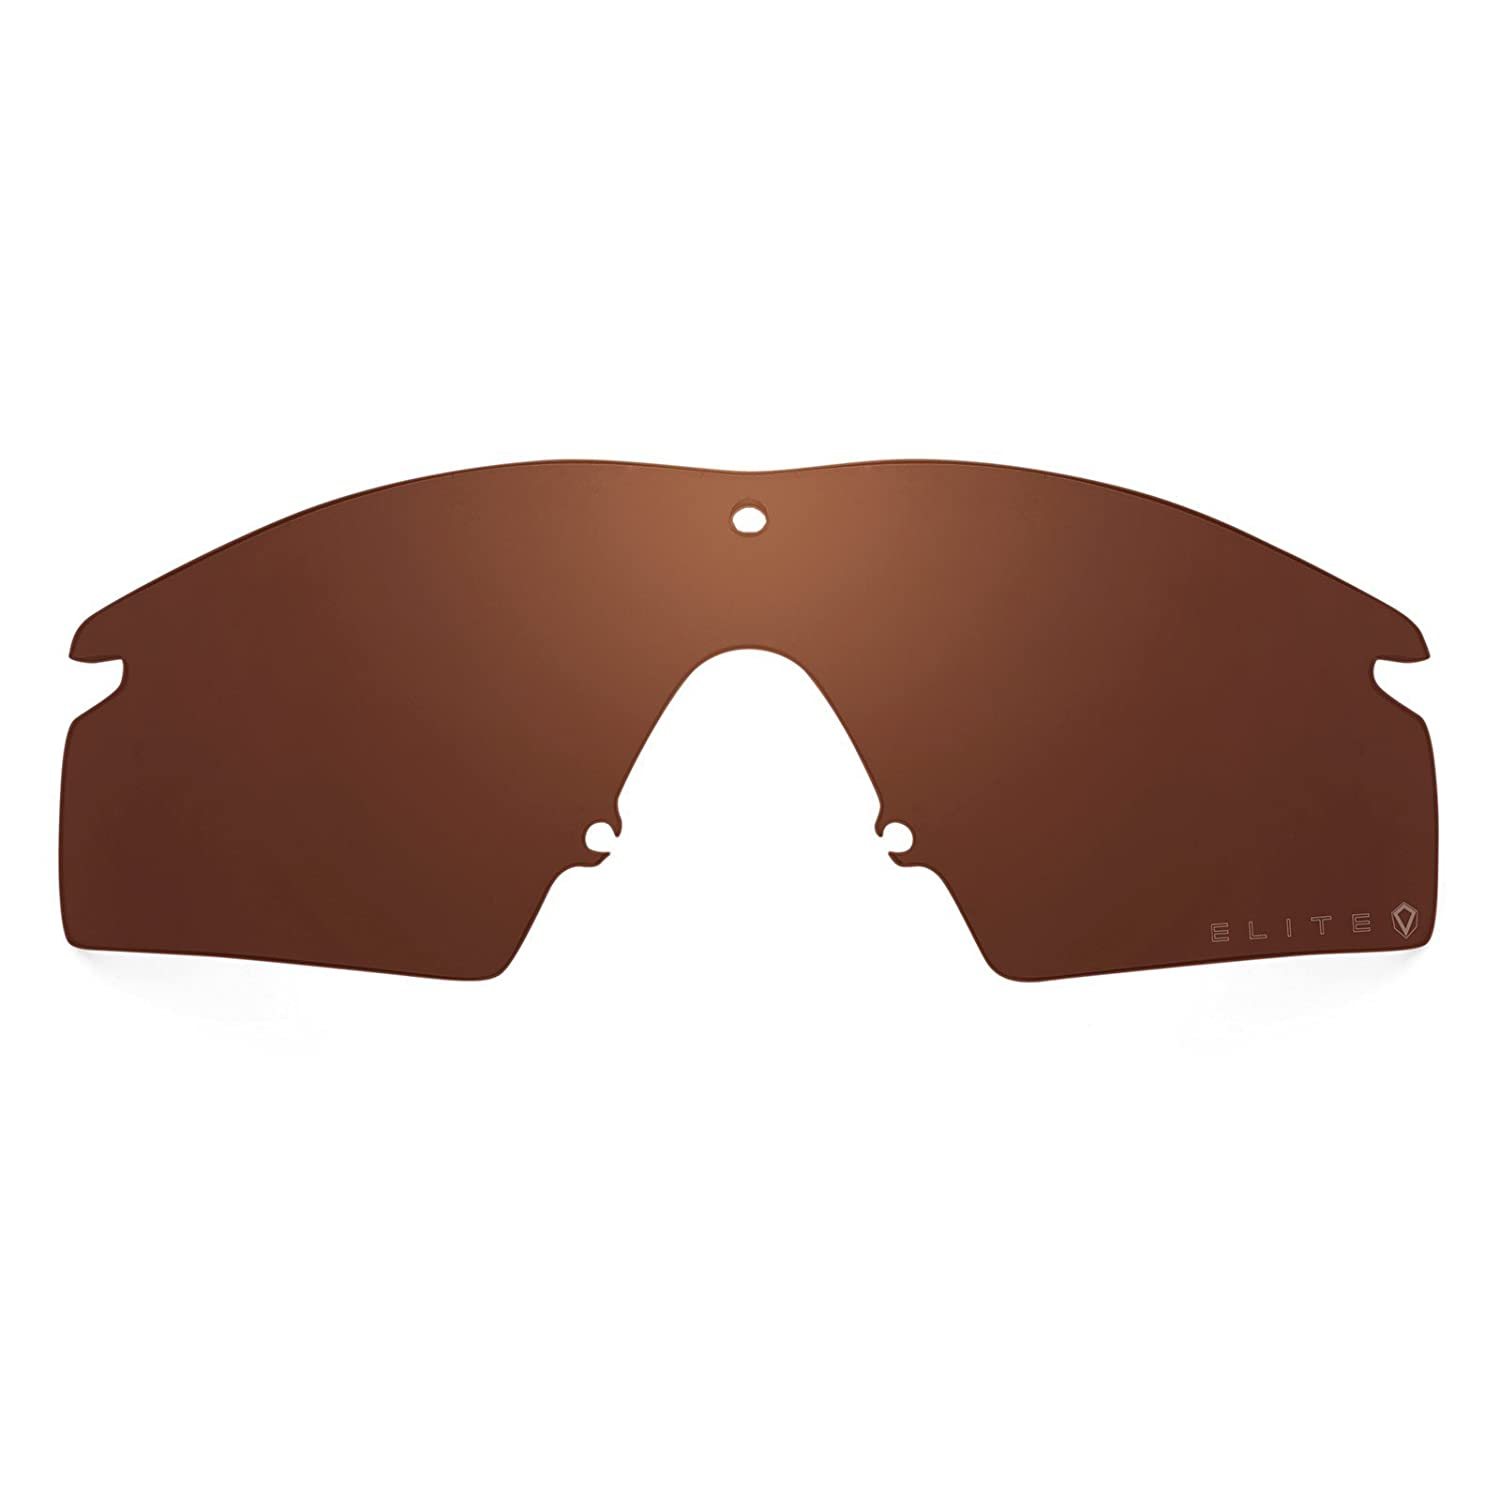 Dorable Oakley M Frame 2.0 Lenses Sketch - Picture Frame Ideas ...